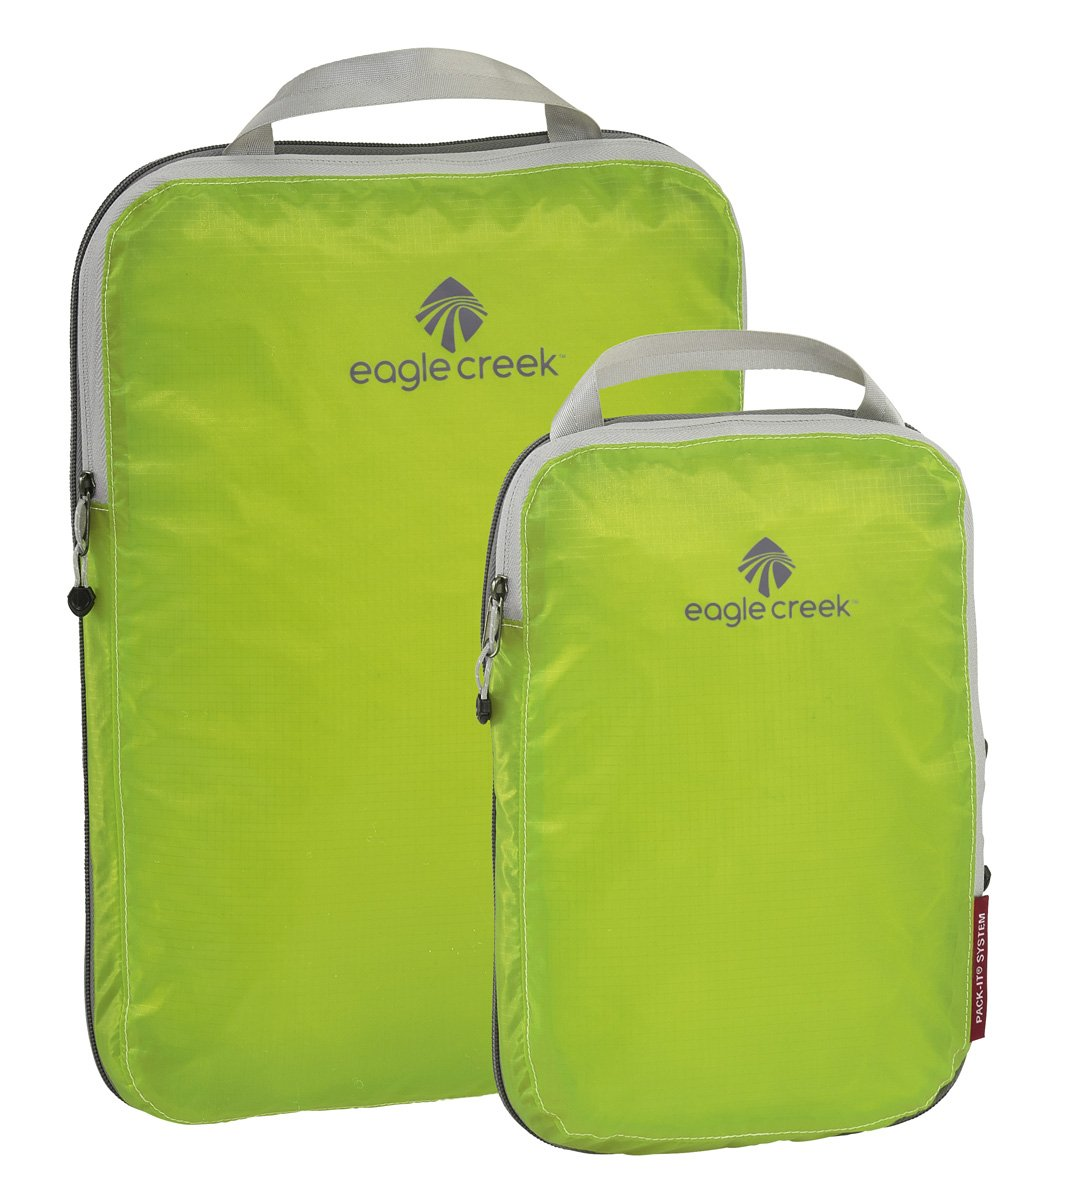 Eagle Creek Travel Gear Luggage Pack-it Specter Compression Cube Set, Strobe Green